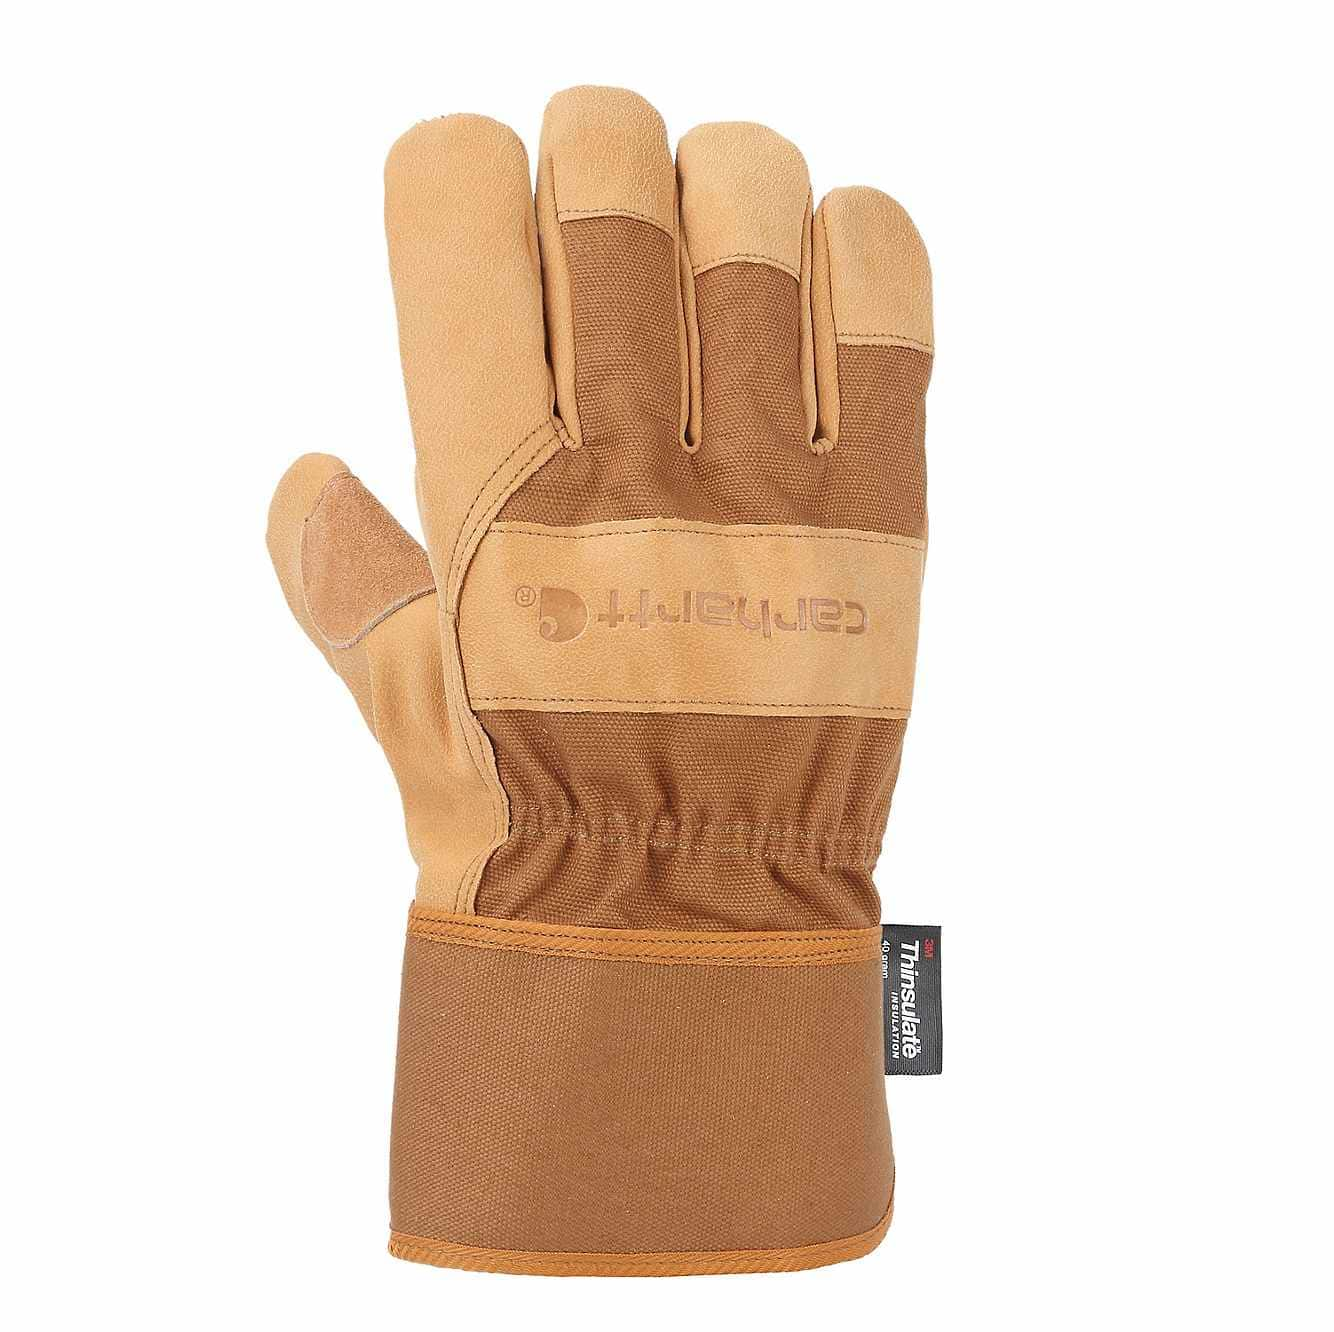 Picture of Insulated Grain Leather Safety Cuff Work Glove in Carhartt Brown